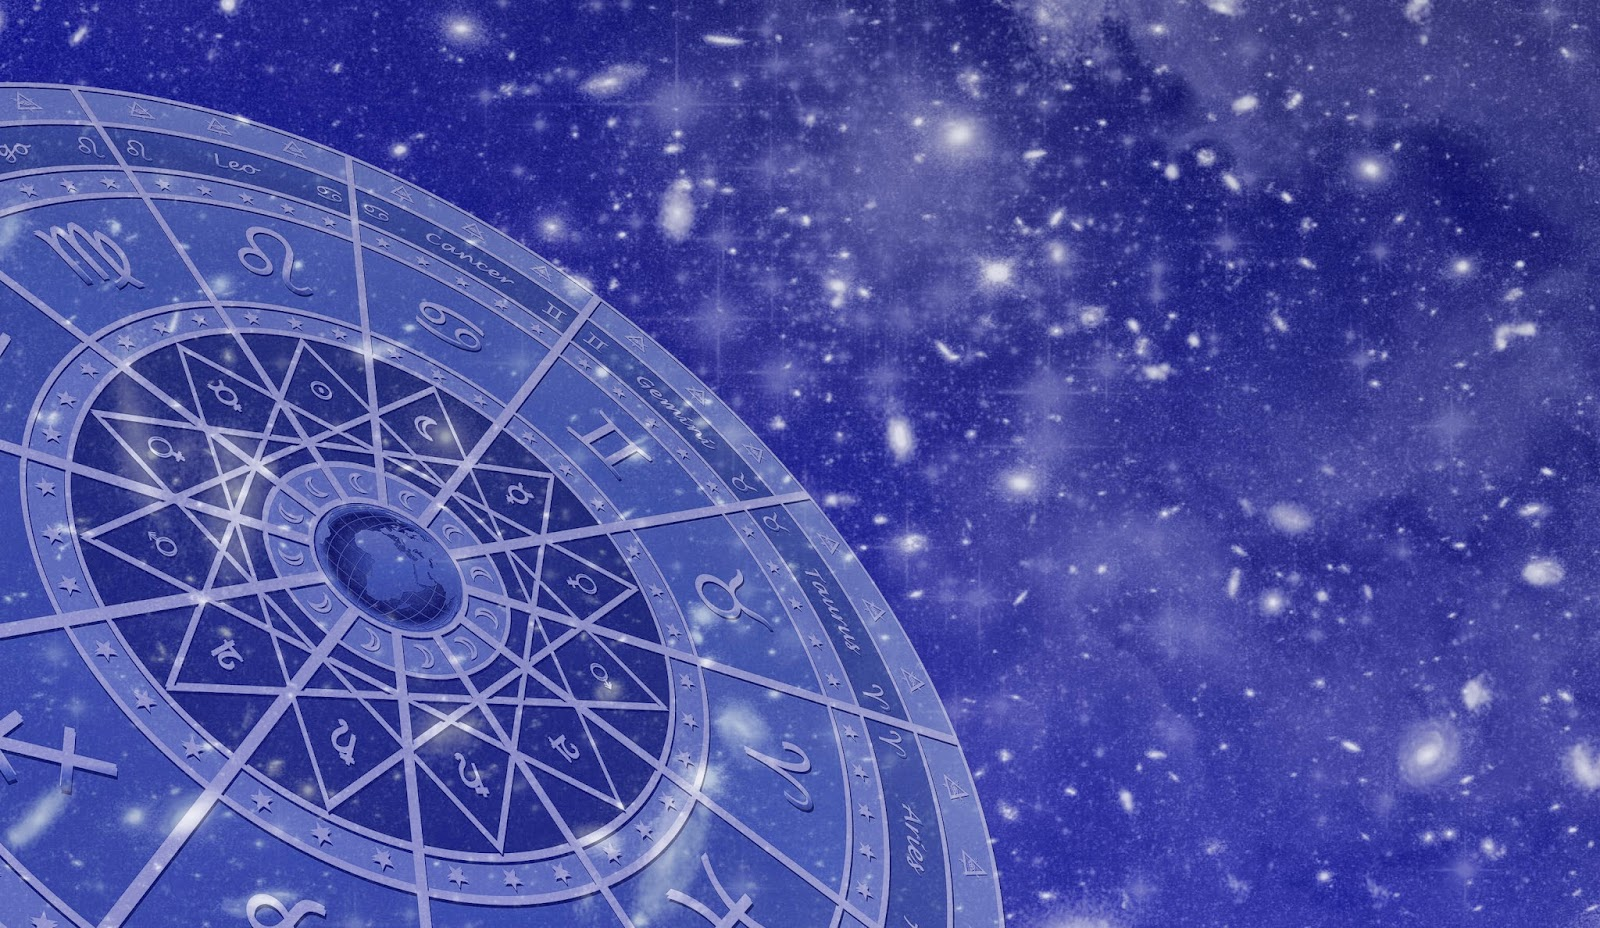 Signs of the zodiac on a blue background